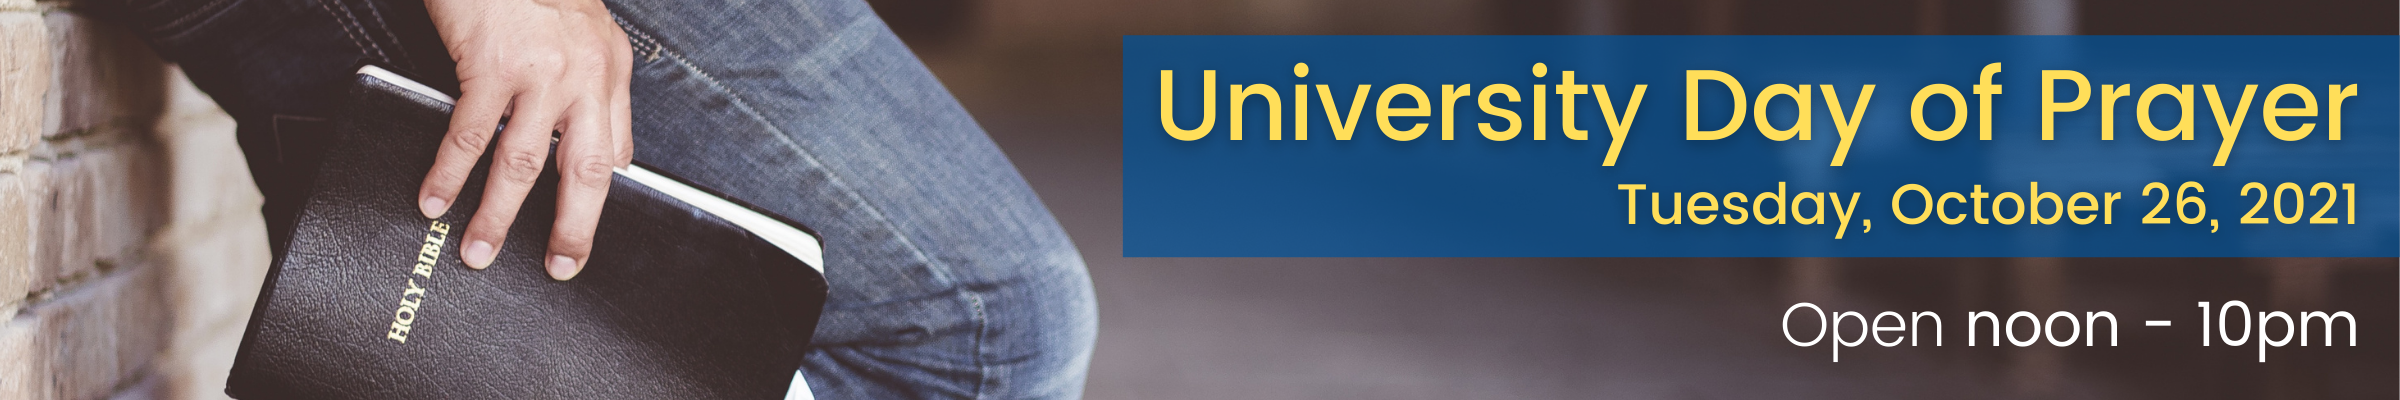 Rolfing will be open noon until 10:00 pm on the University Day of Prayer (October 26, 2021)